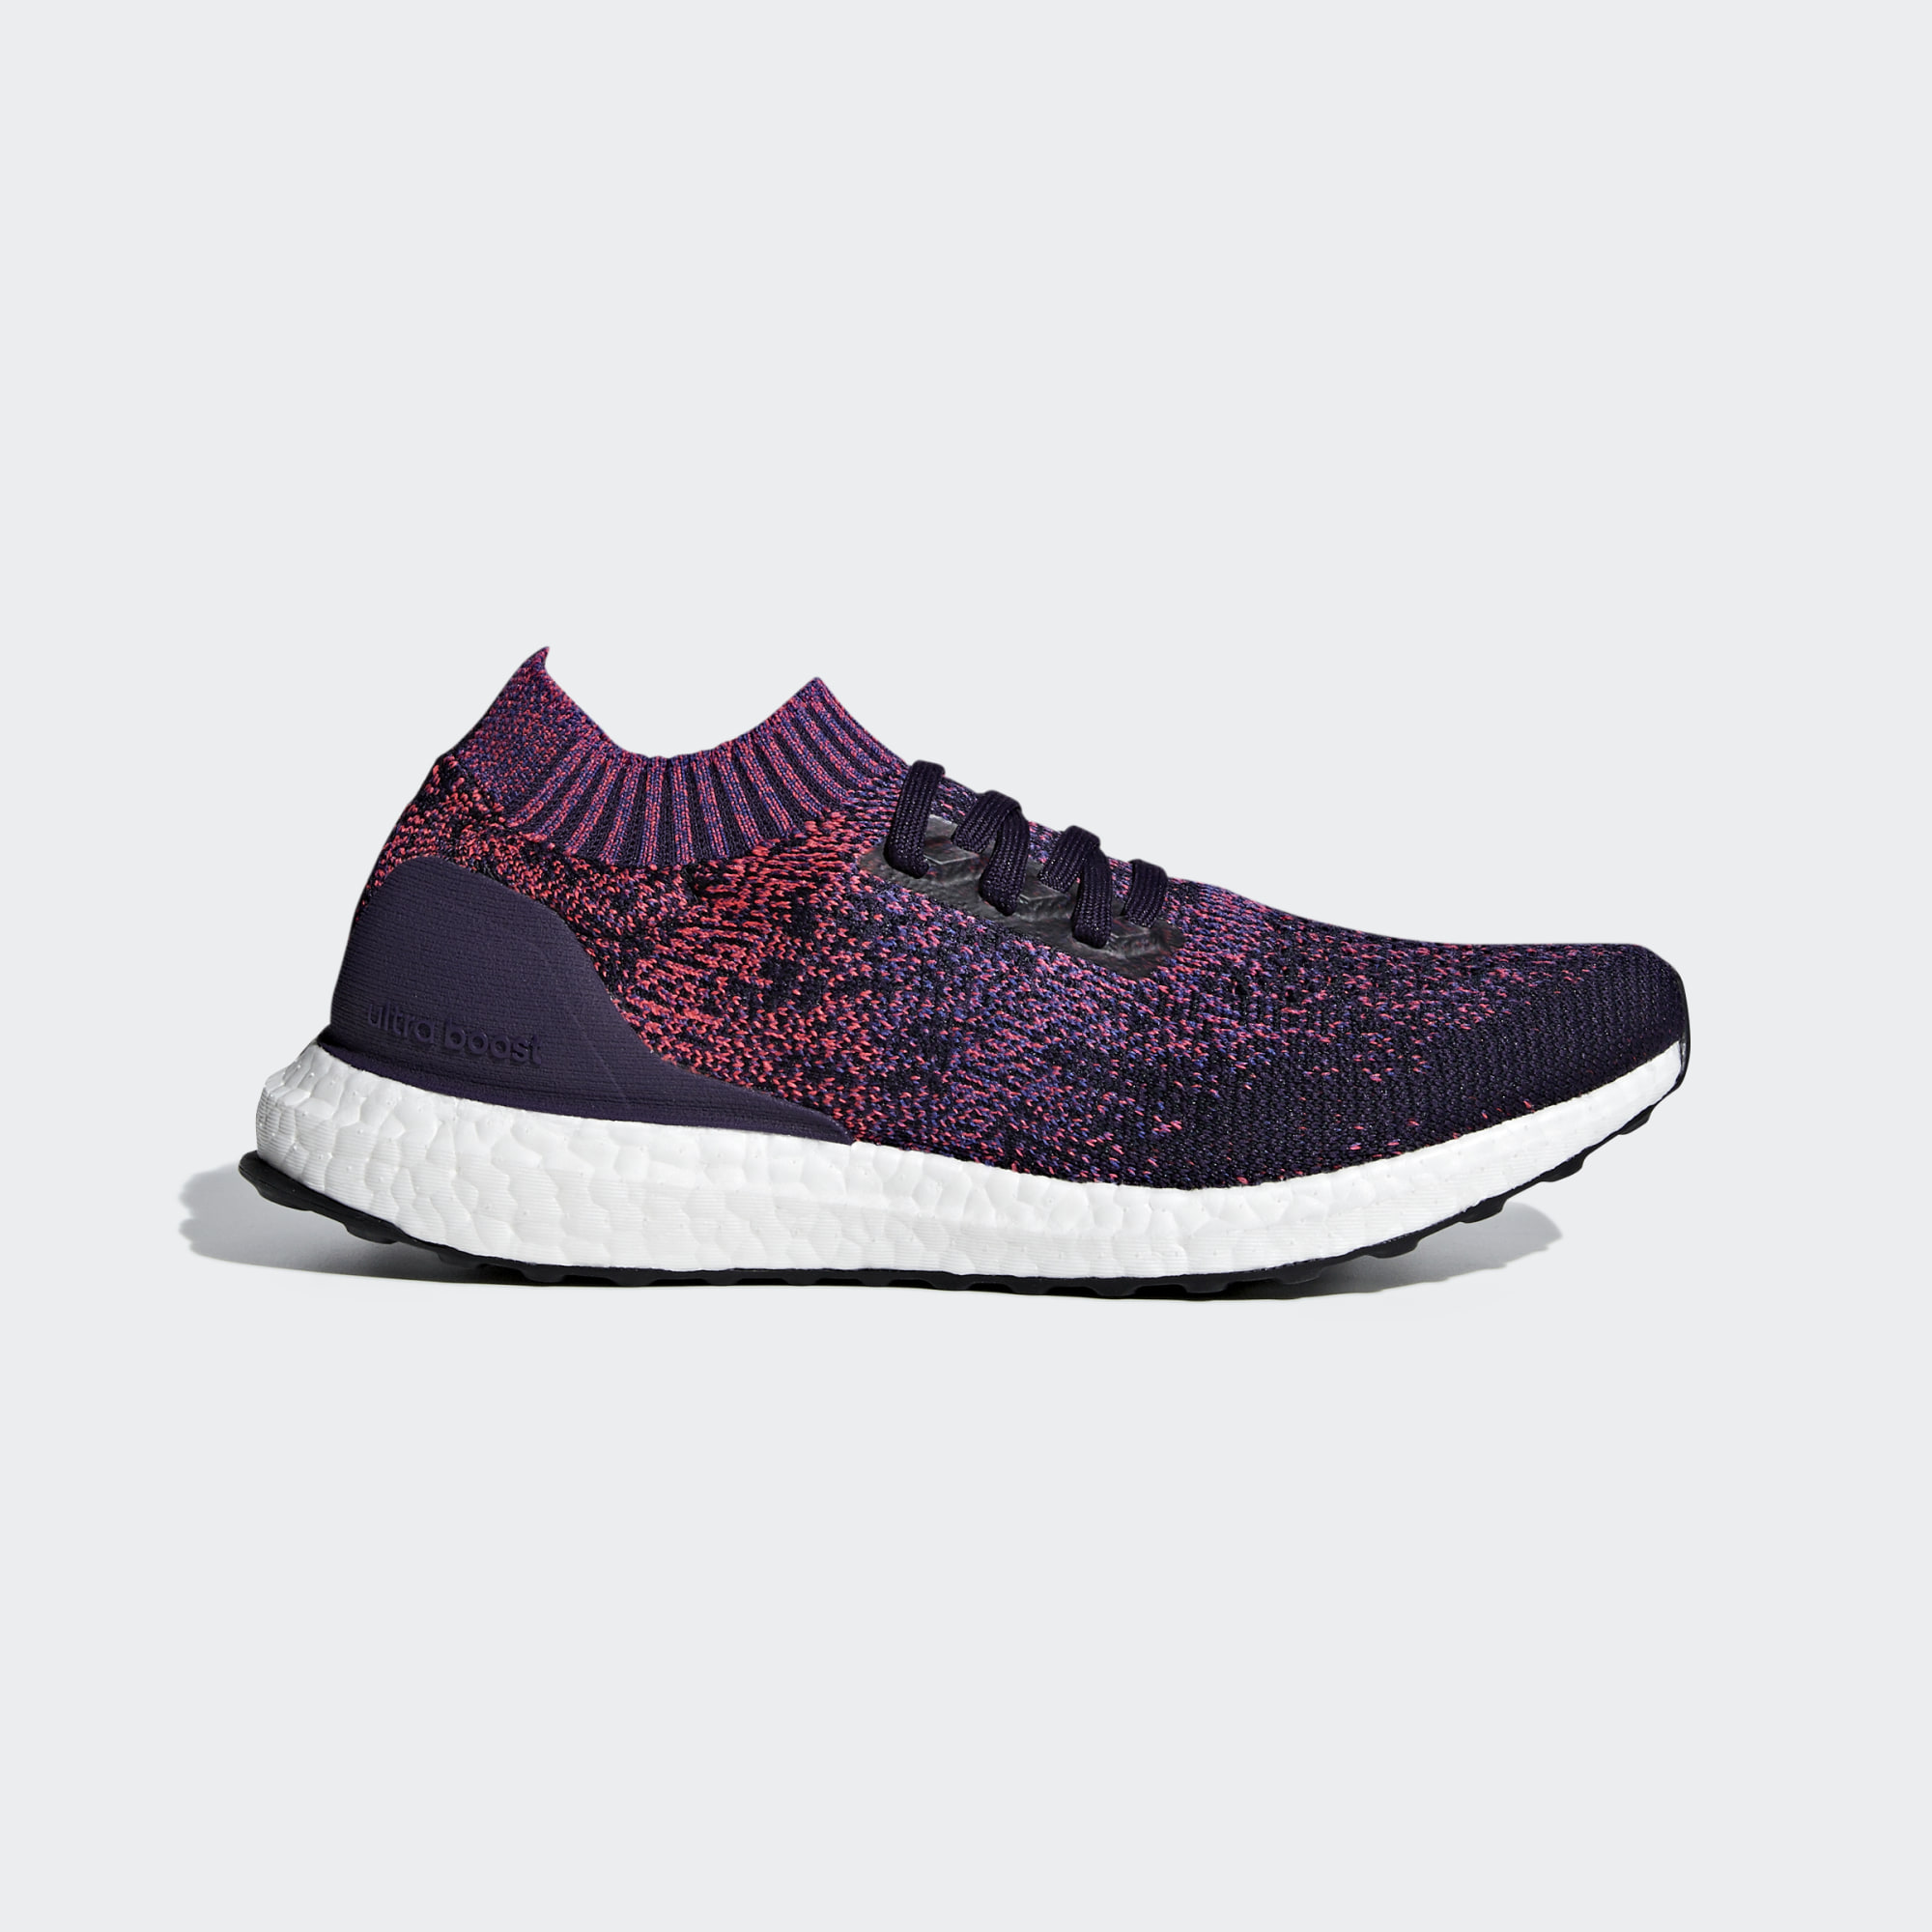 giay-sneaker-the-thao-adidas-ultraboost-uncaged-nam-tim-b75862-hang-chinh-hang